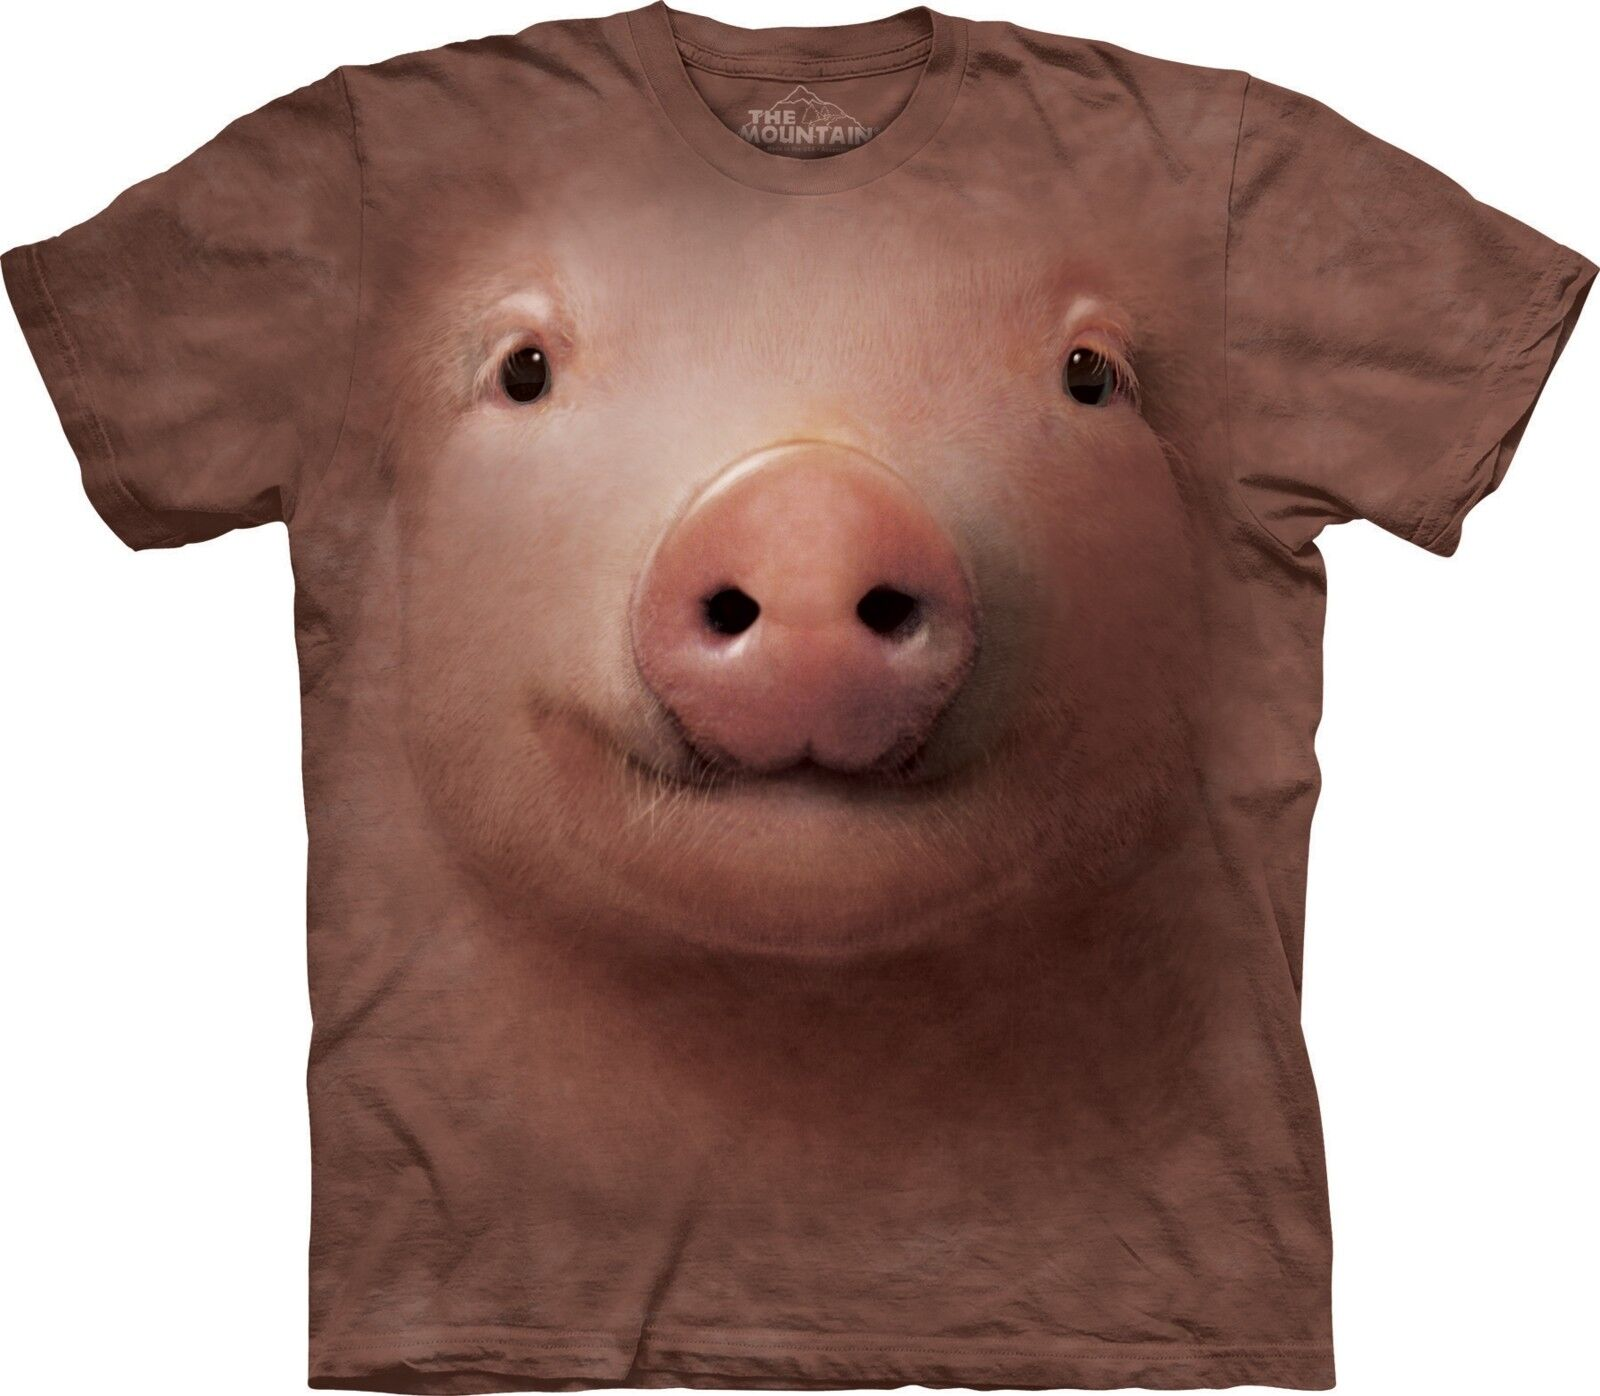 Pig Face Animals T Shirt Adult Unisex The Mountain